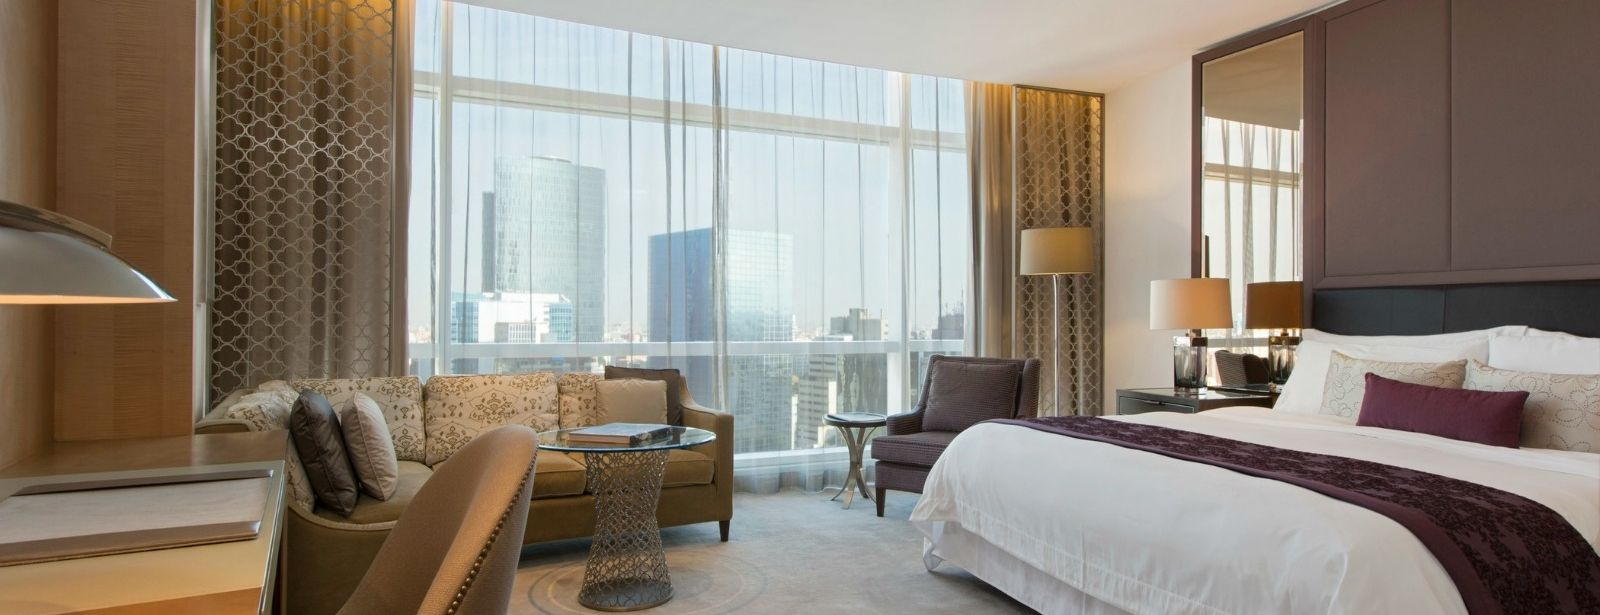 Grand Deluxe Room - The St. Regis Mexico City